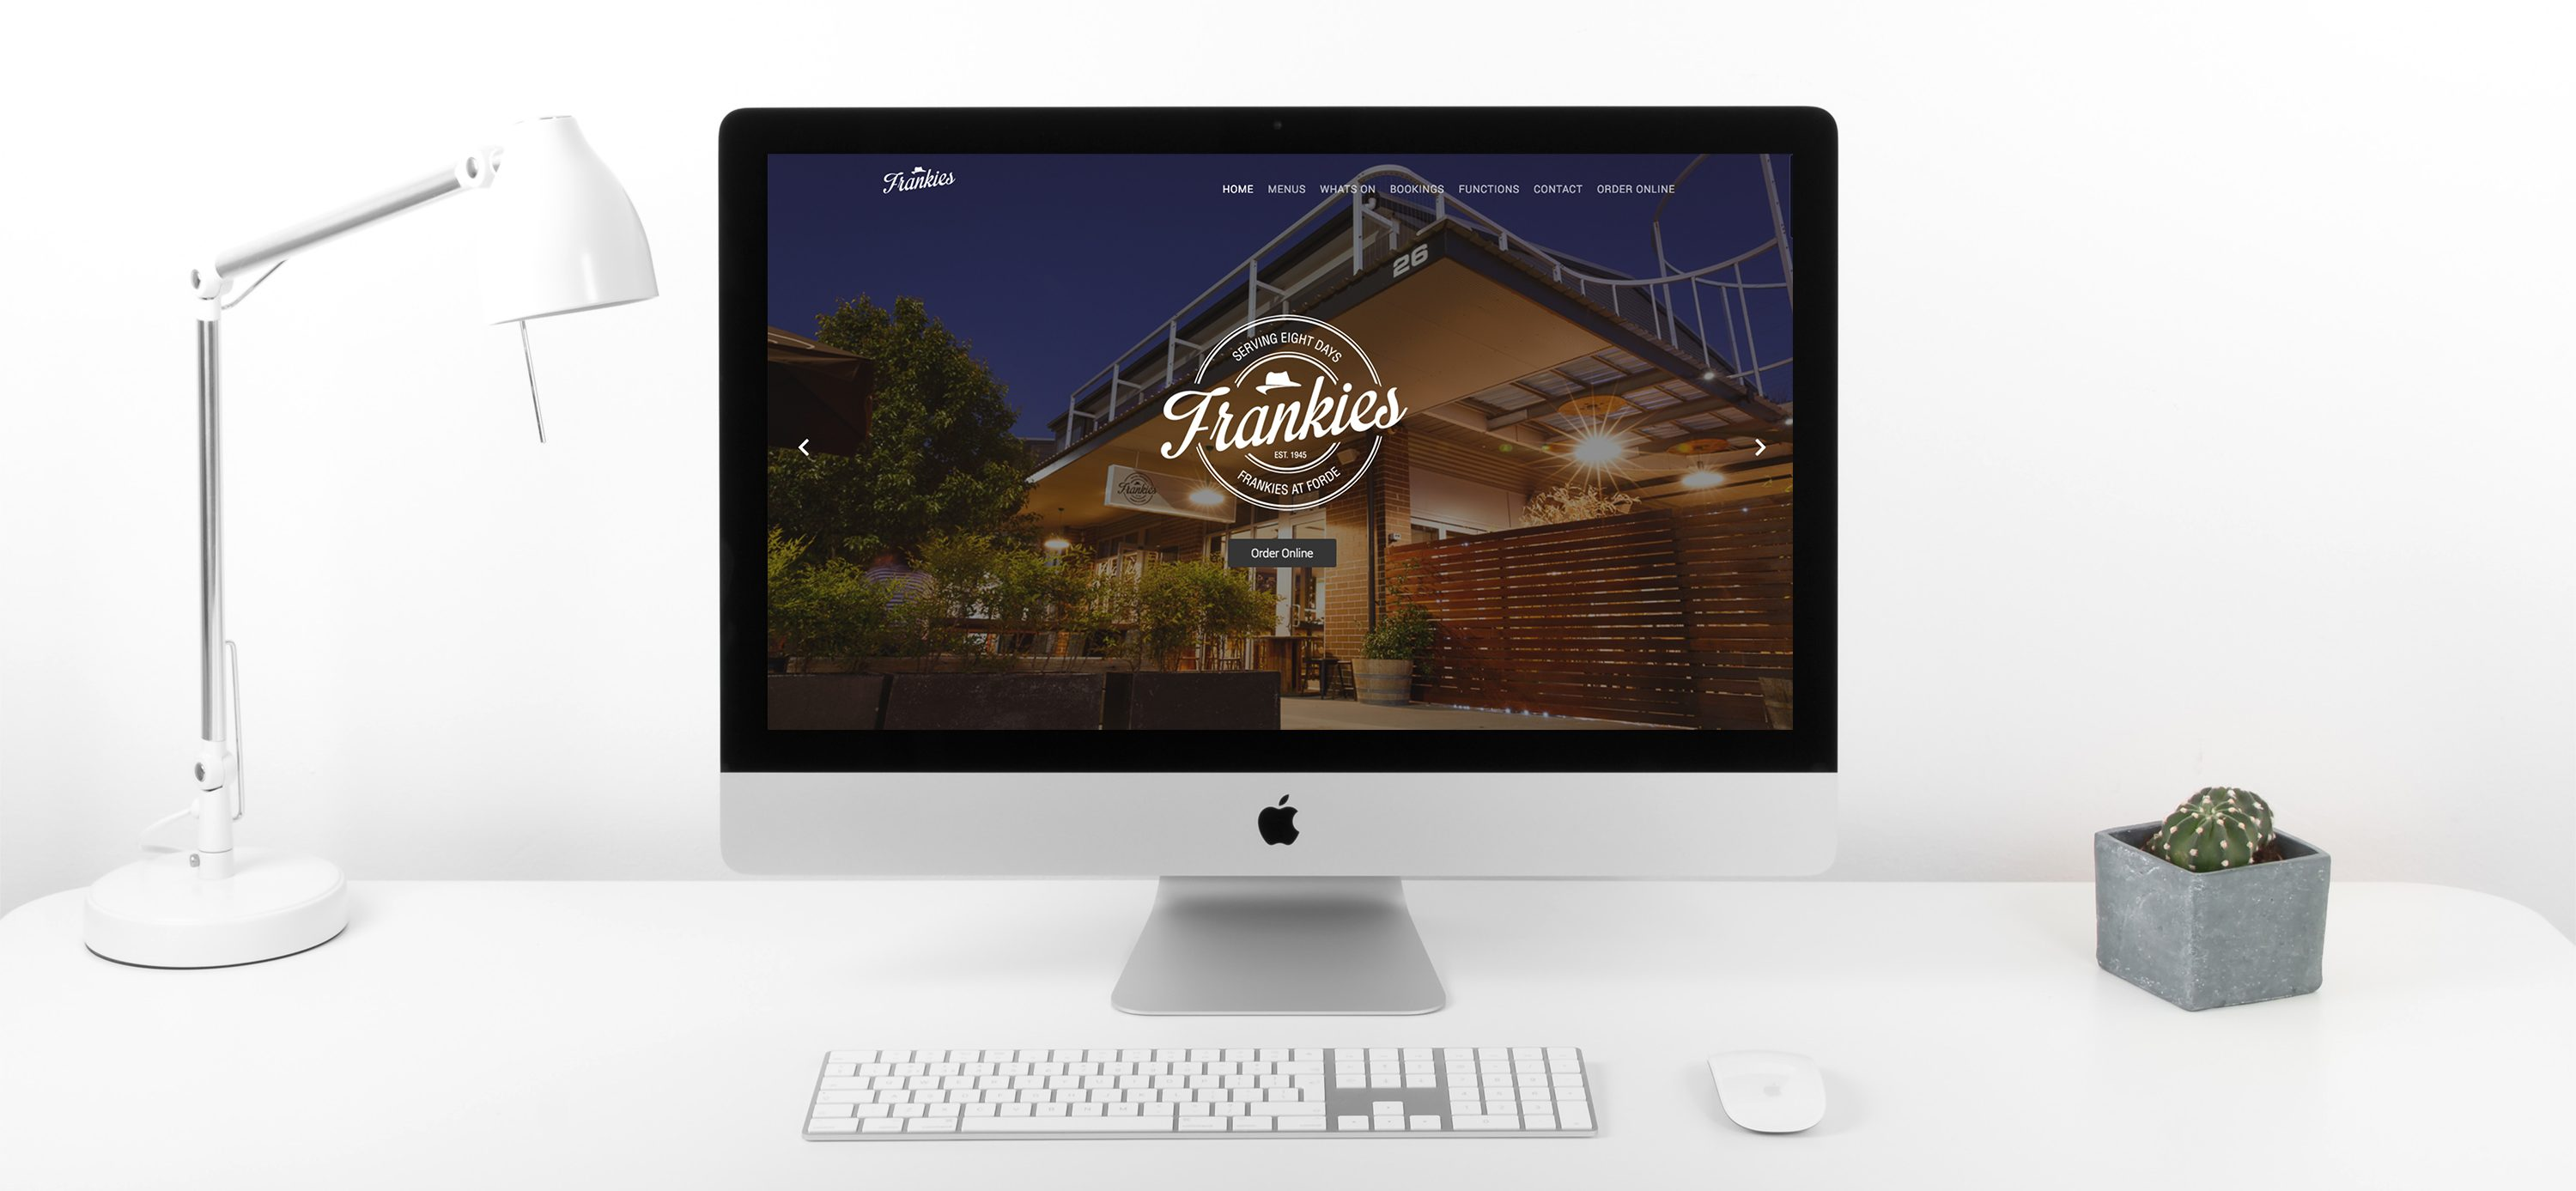 Frankies-Website-mockup-1